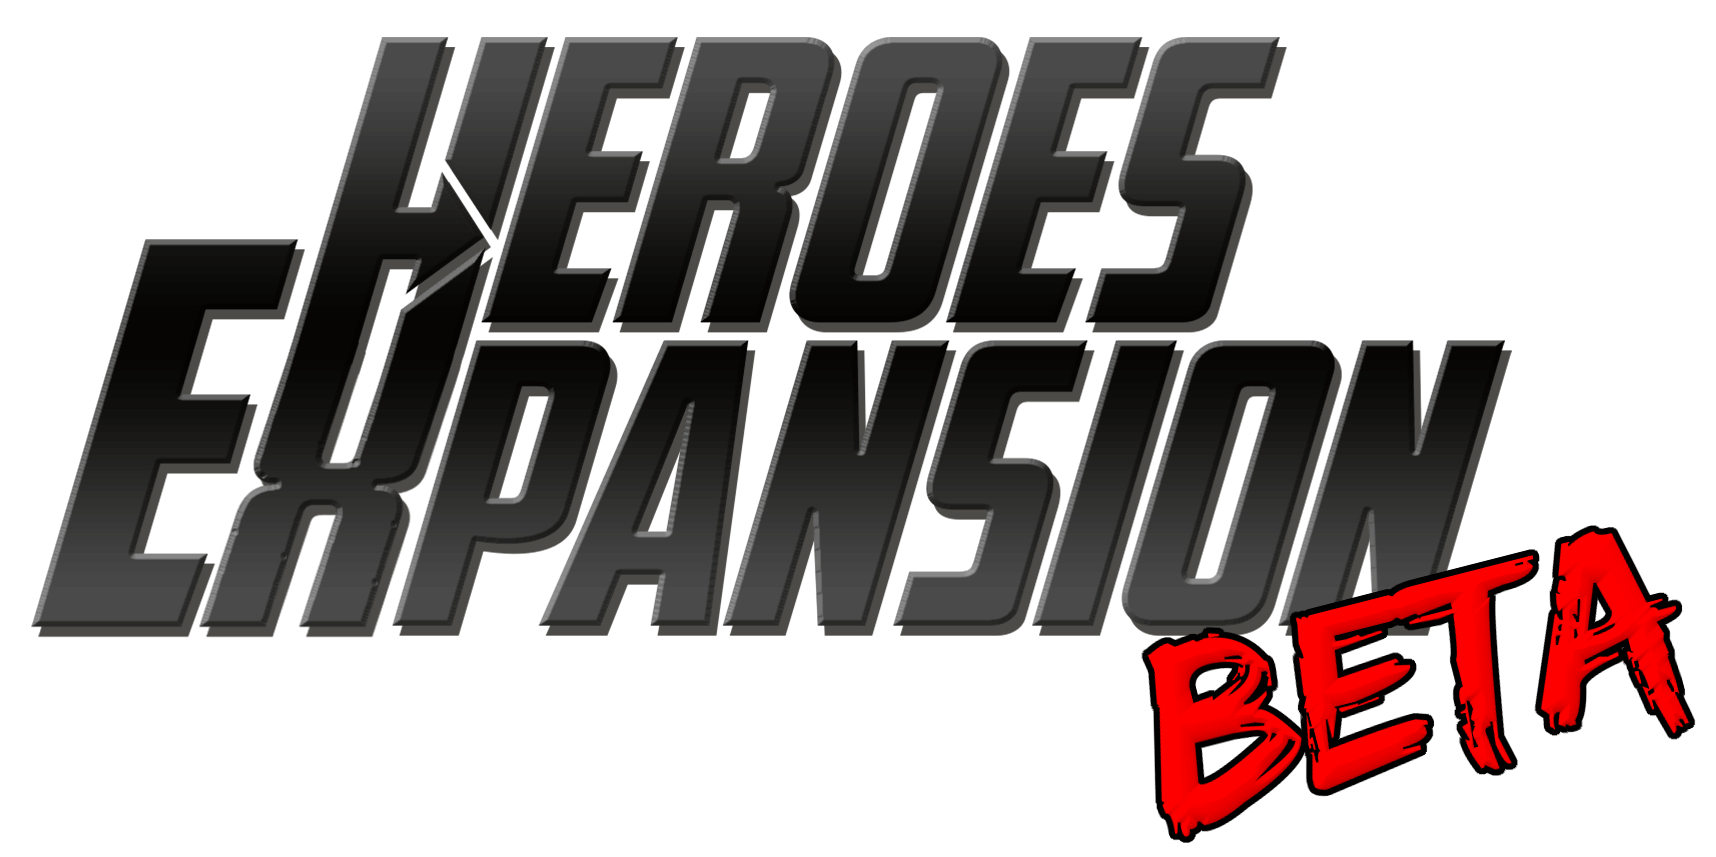 HeroesExpansion скриншот 1